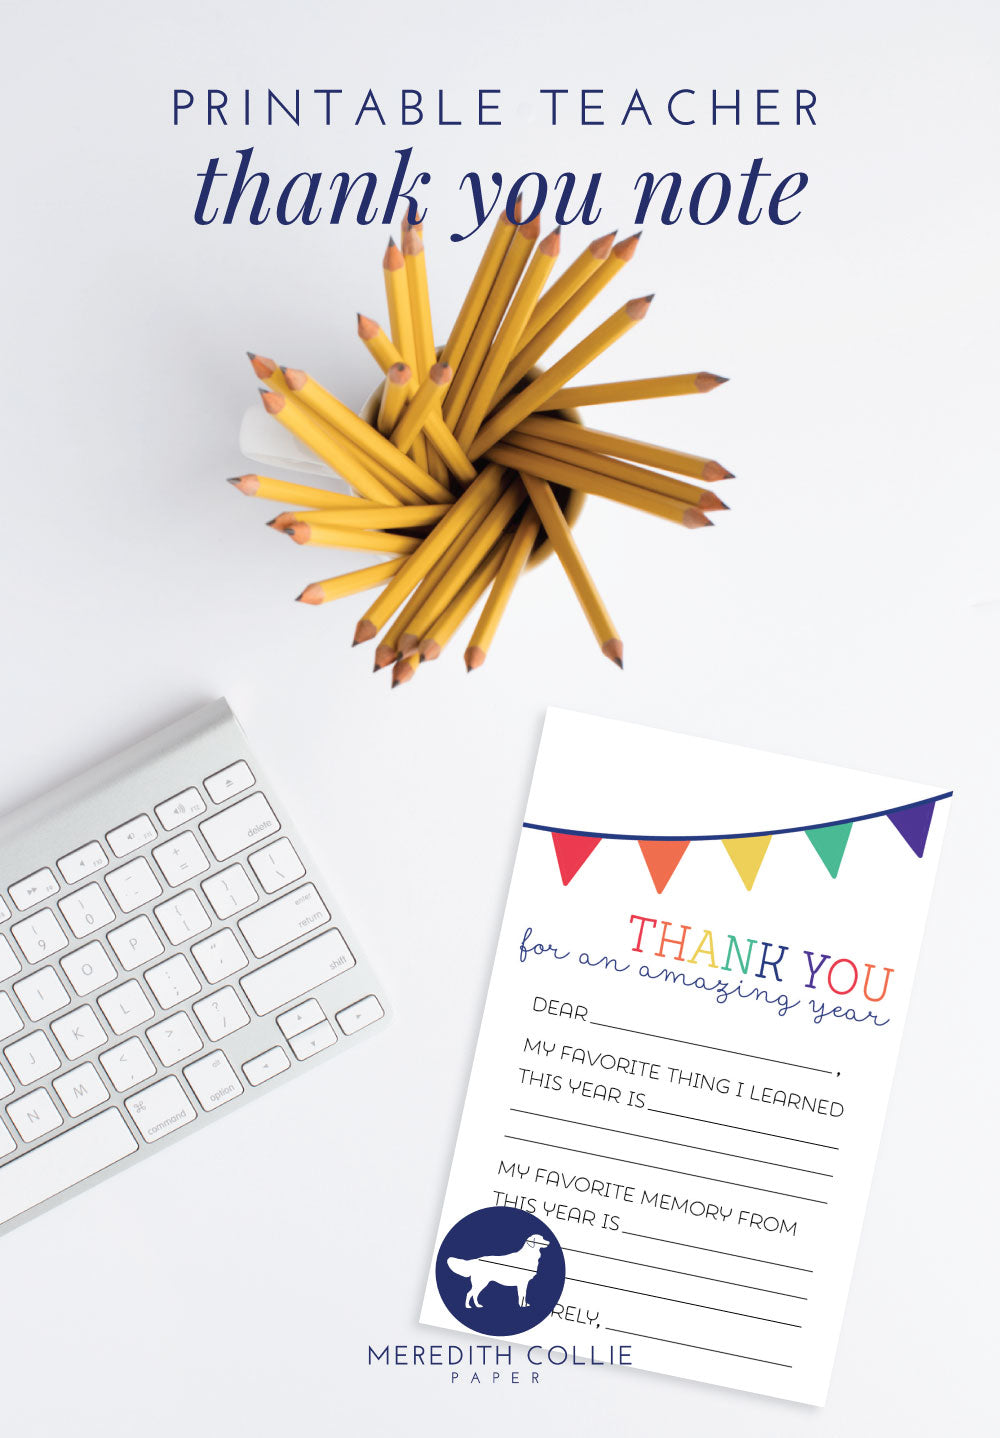 Printable Teacher Thank You Note Blog Post / Meredith Collie Paper